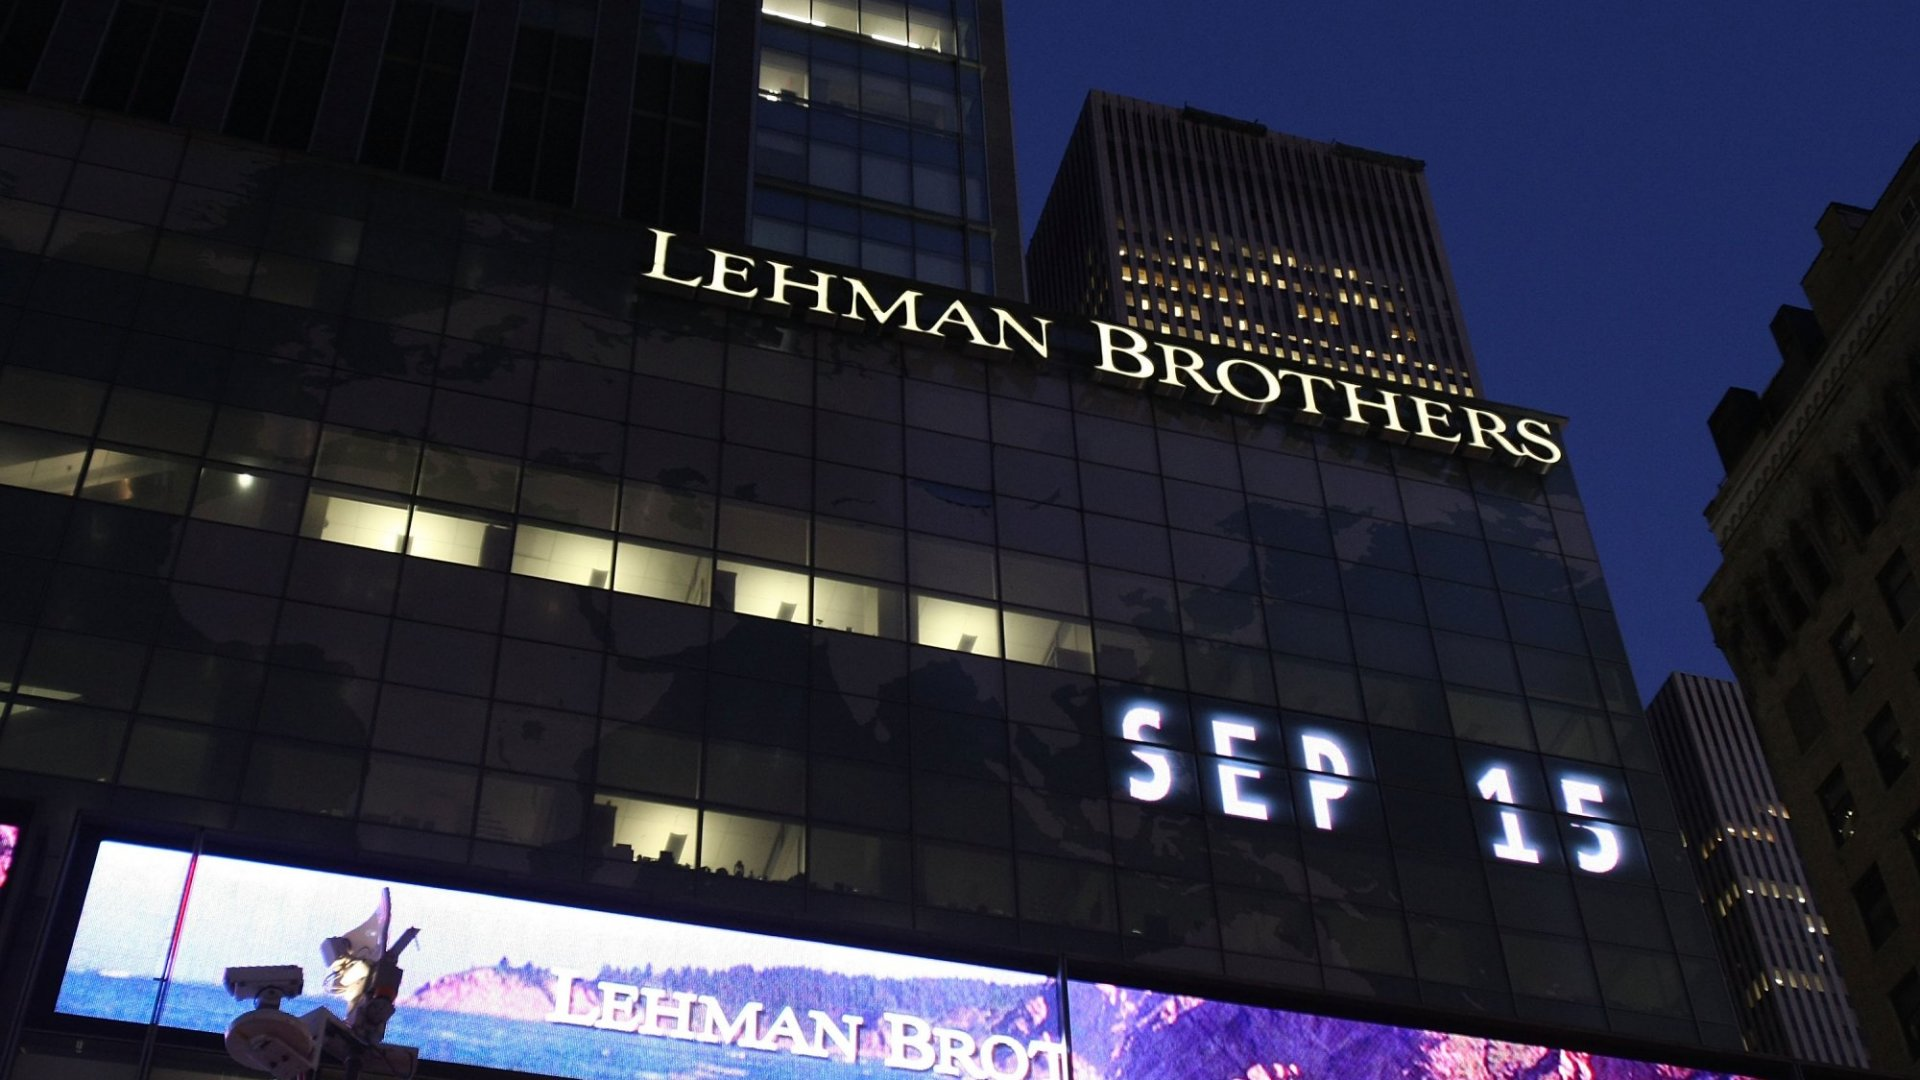 Lehman Brothers Holdings Inc. September 15, 2008 in New York City. Lehman Brothers filed a Chapter 11 bankruptcy petition in U.S. Bankruptcy Court after attempts to rescue the storied financial firm failed. (Photo by Mario Tama/Getty Images)